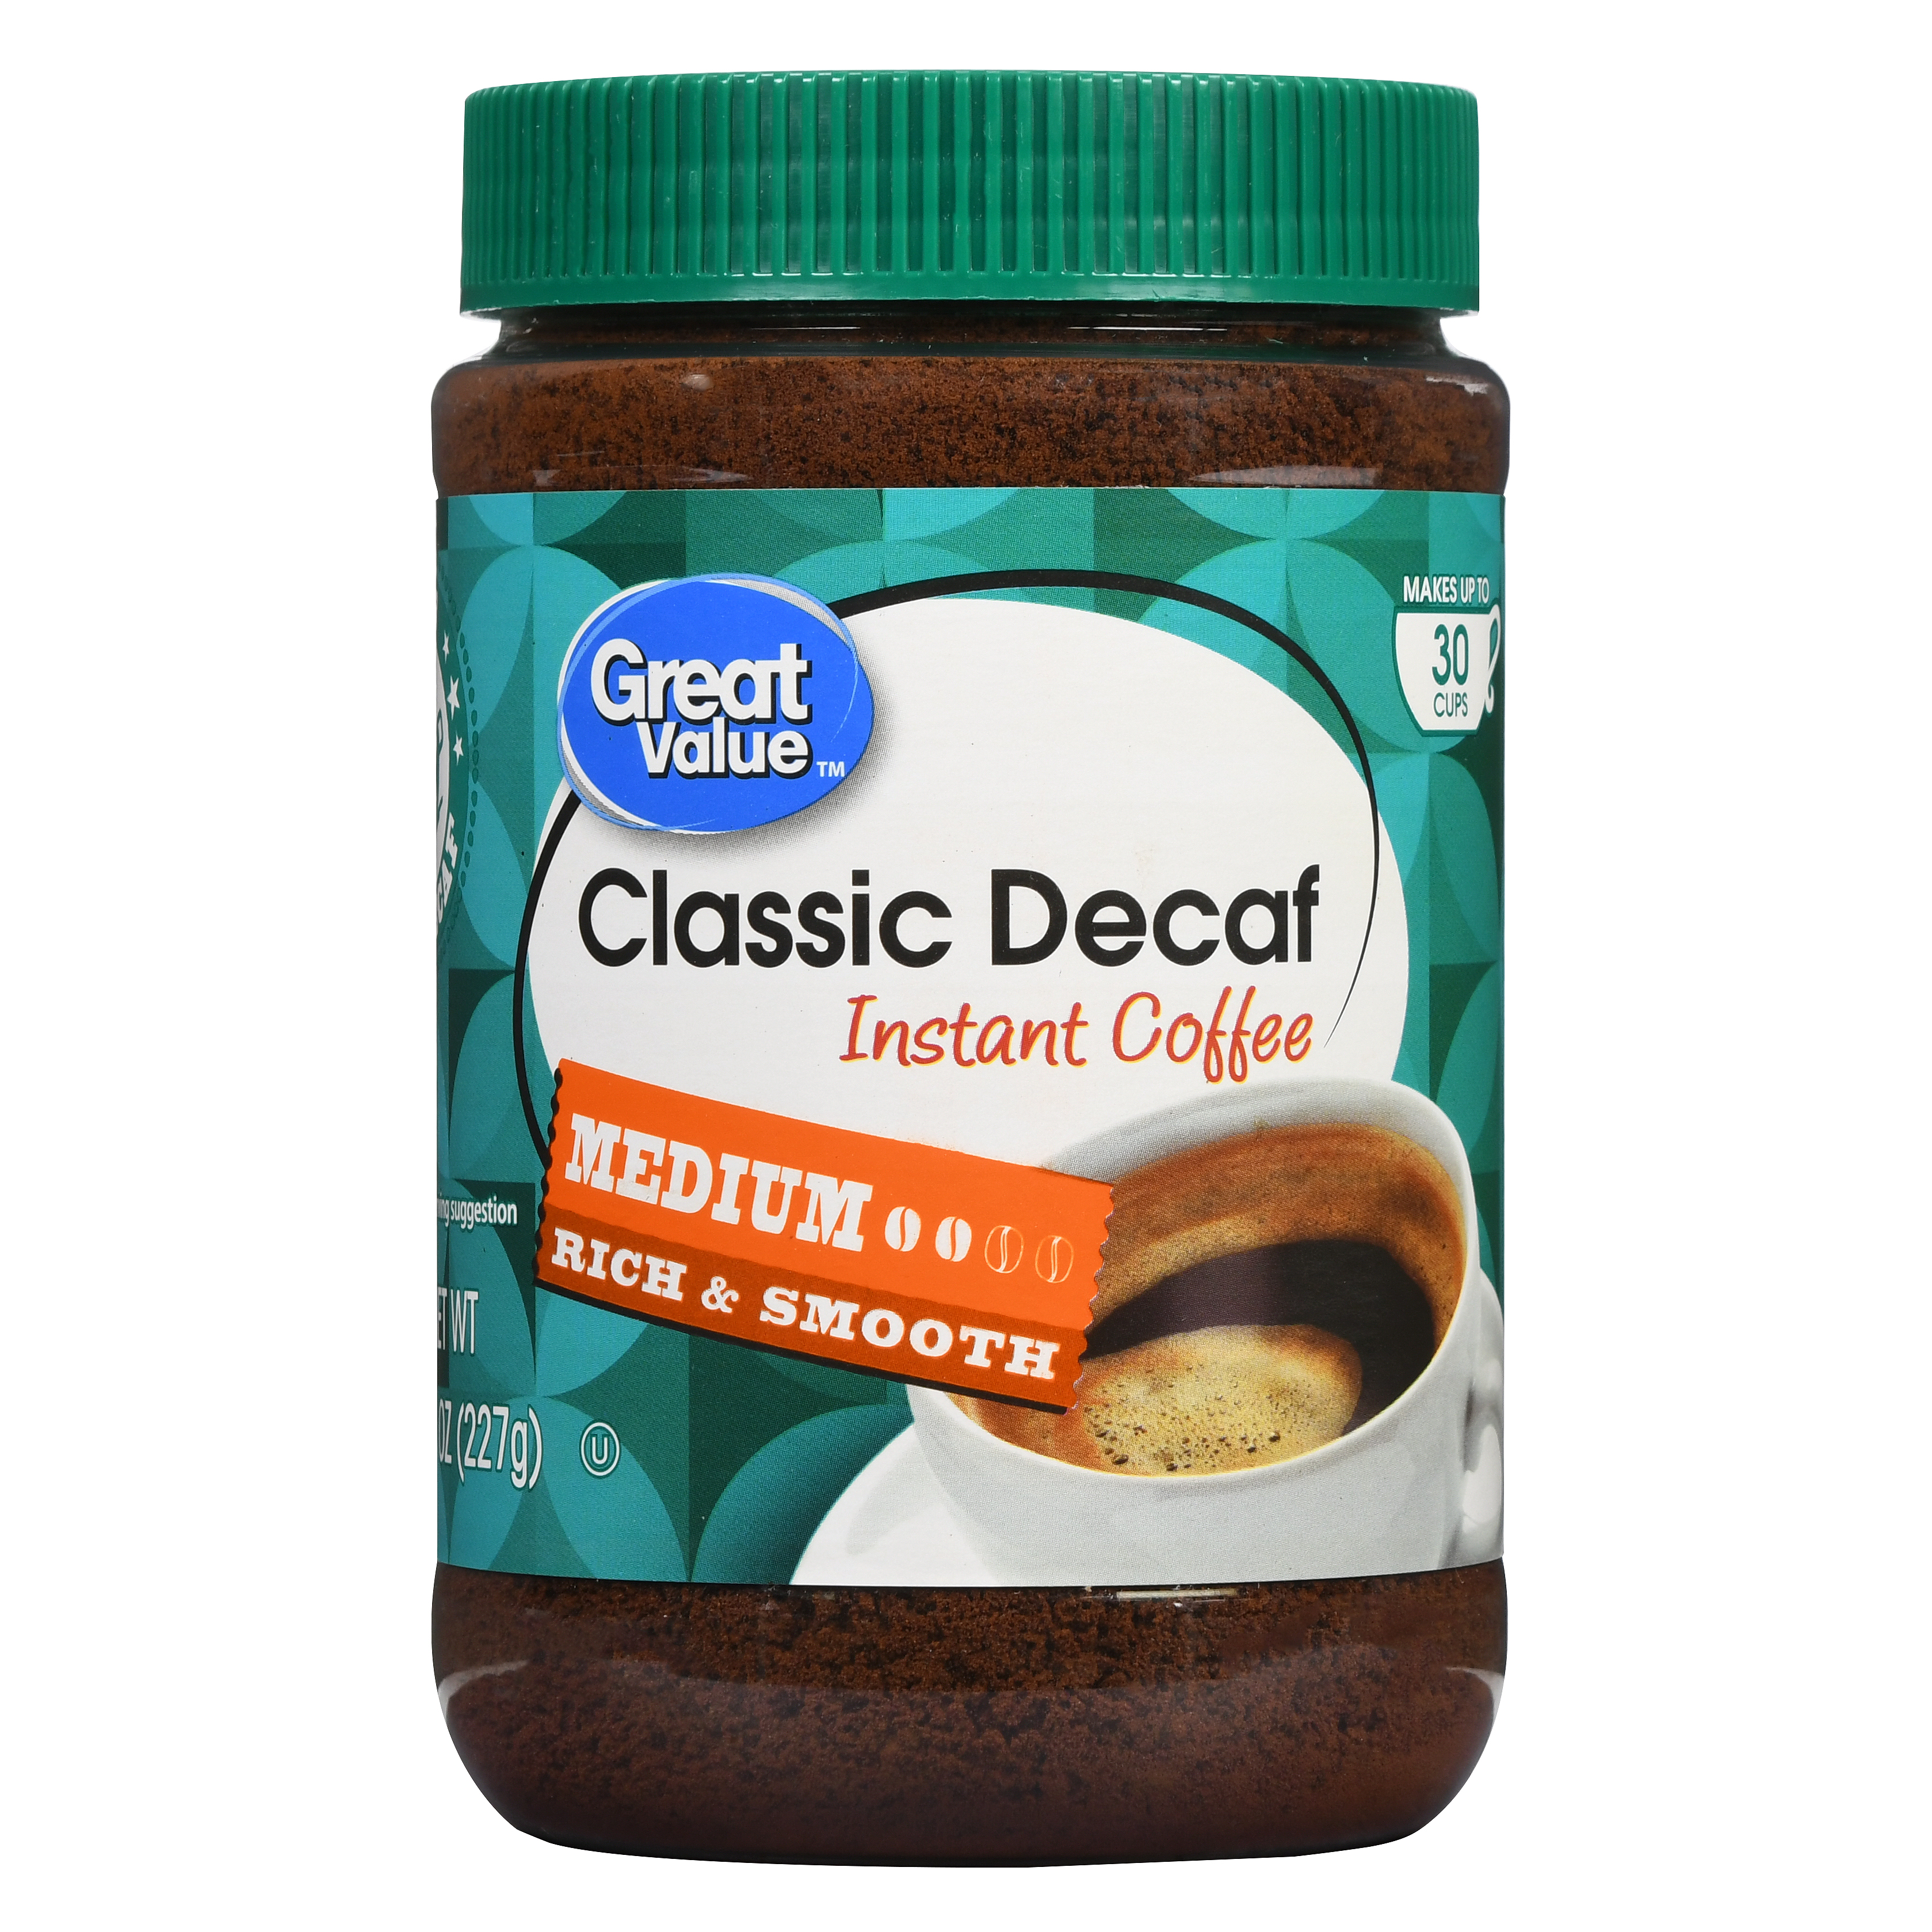 Great Value Classic Decaf Instant Coffee, Medium Roast, 8 oz